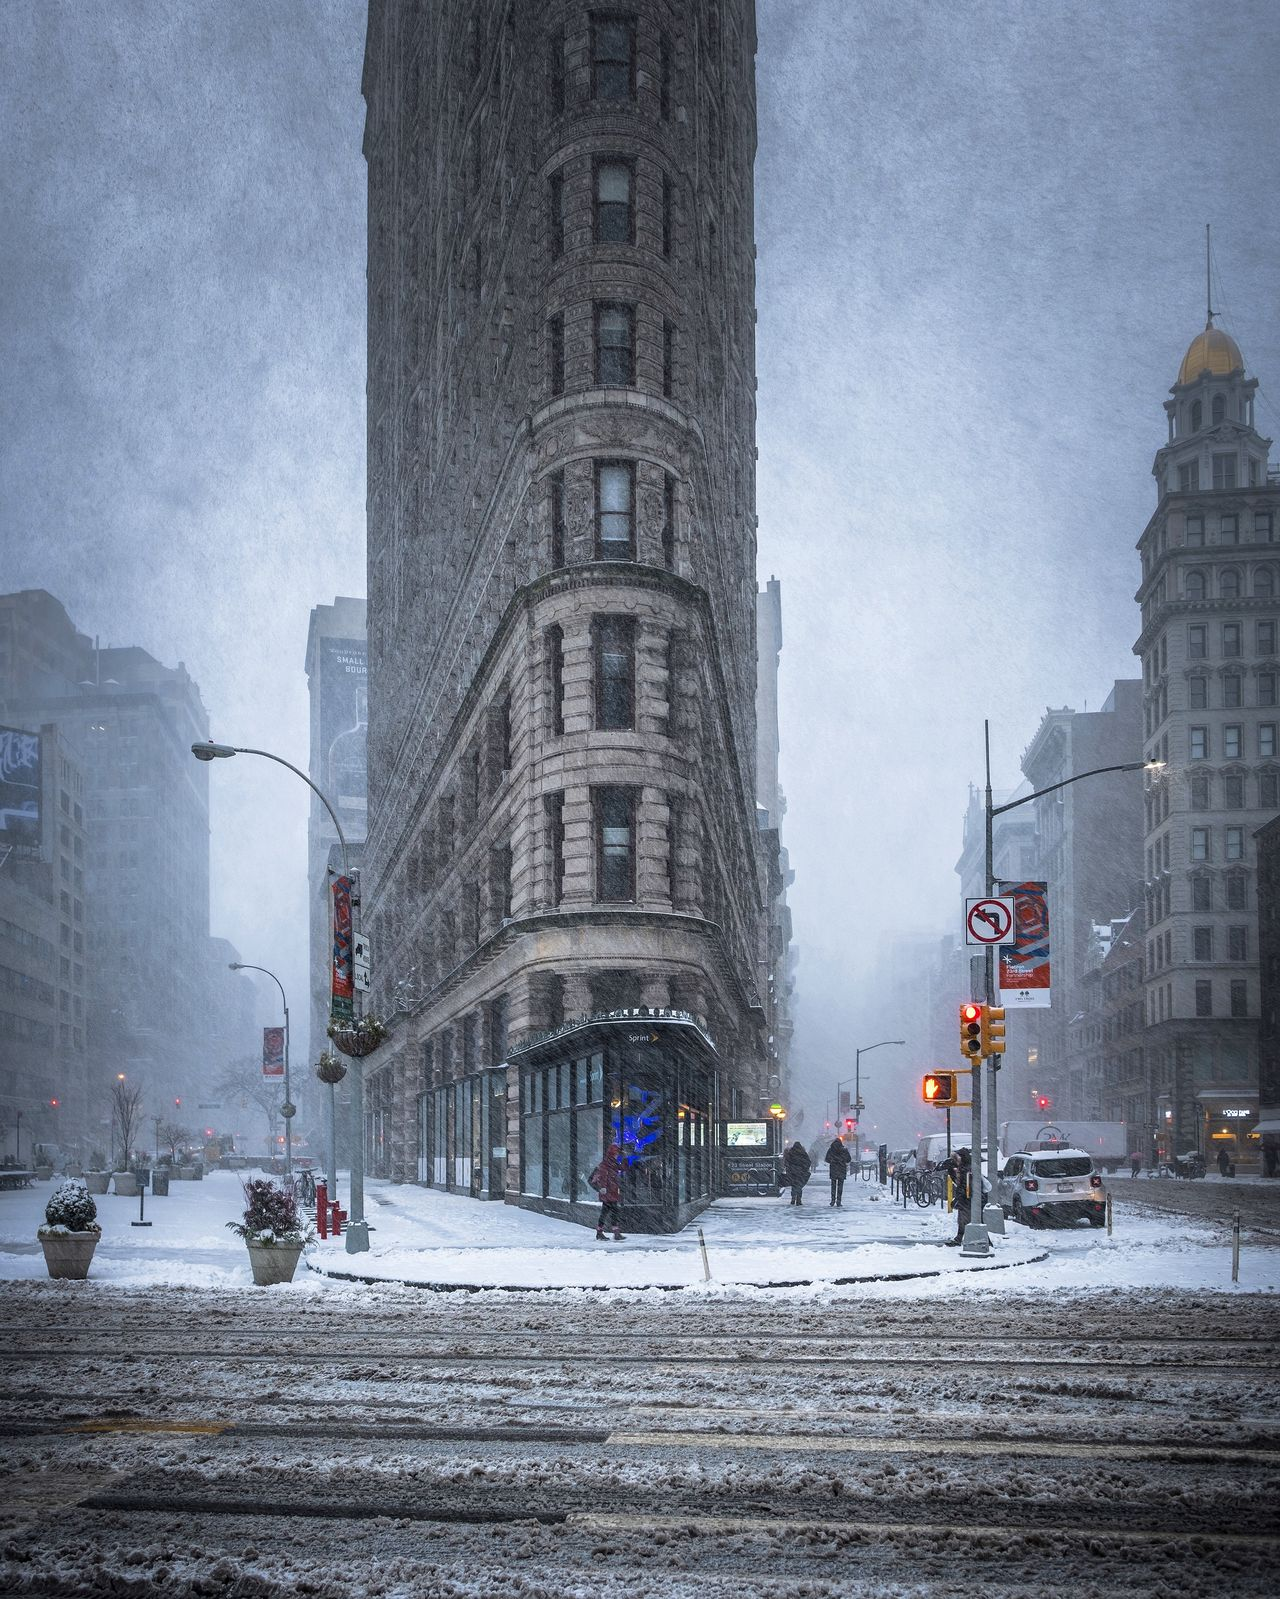 Flatiron building amidst streets in city during winter